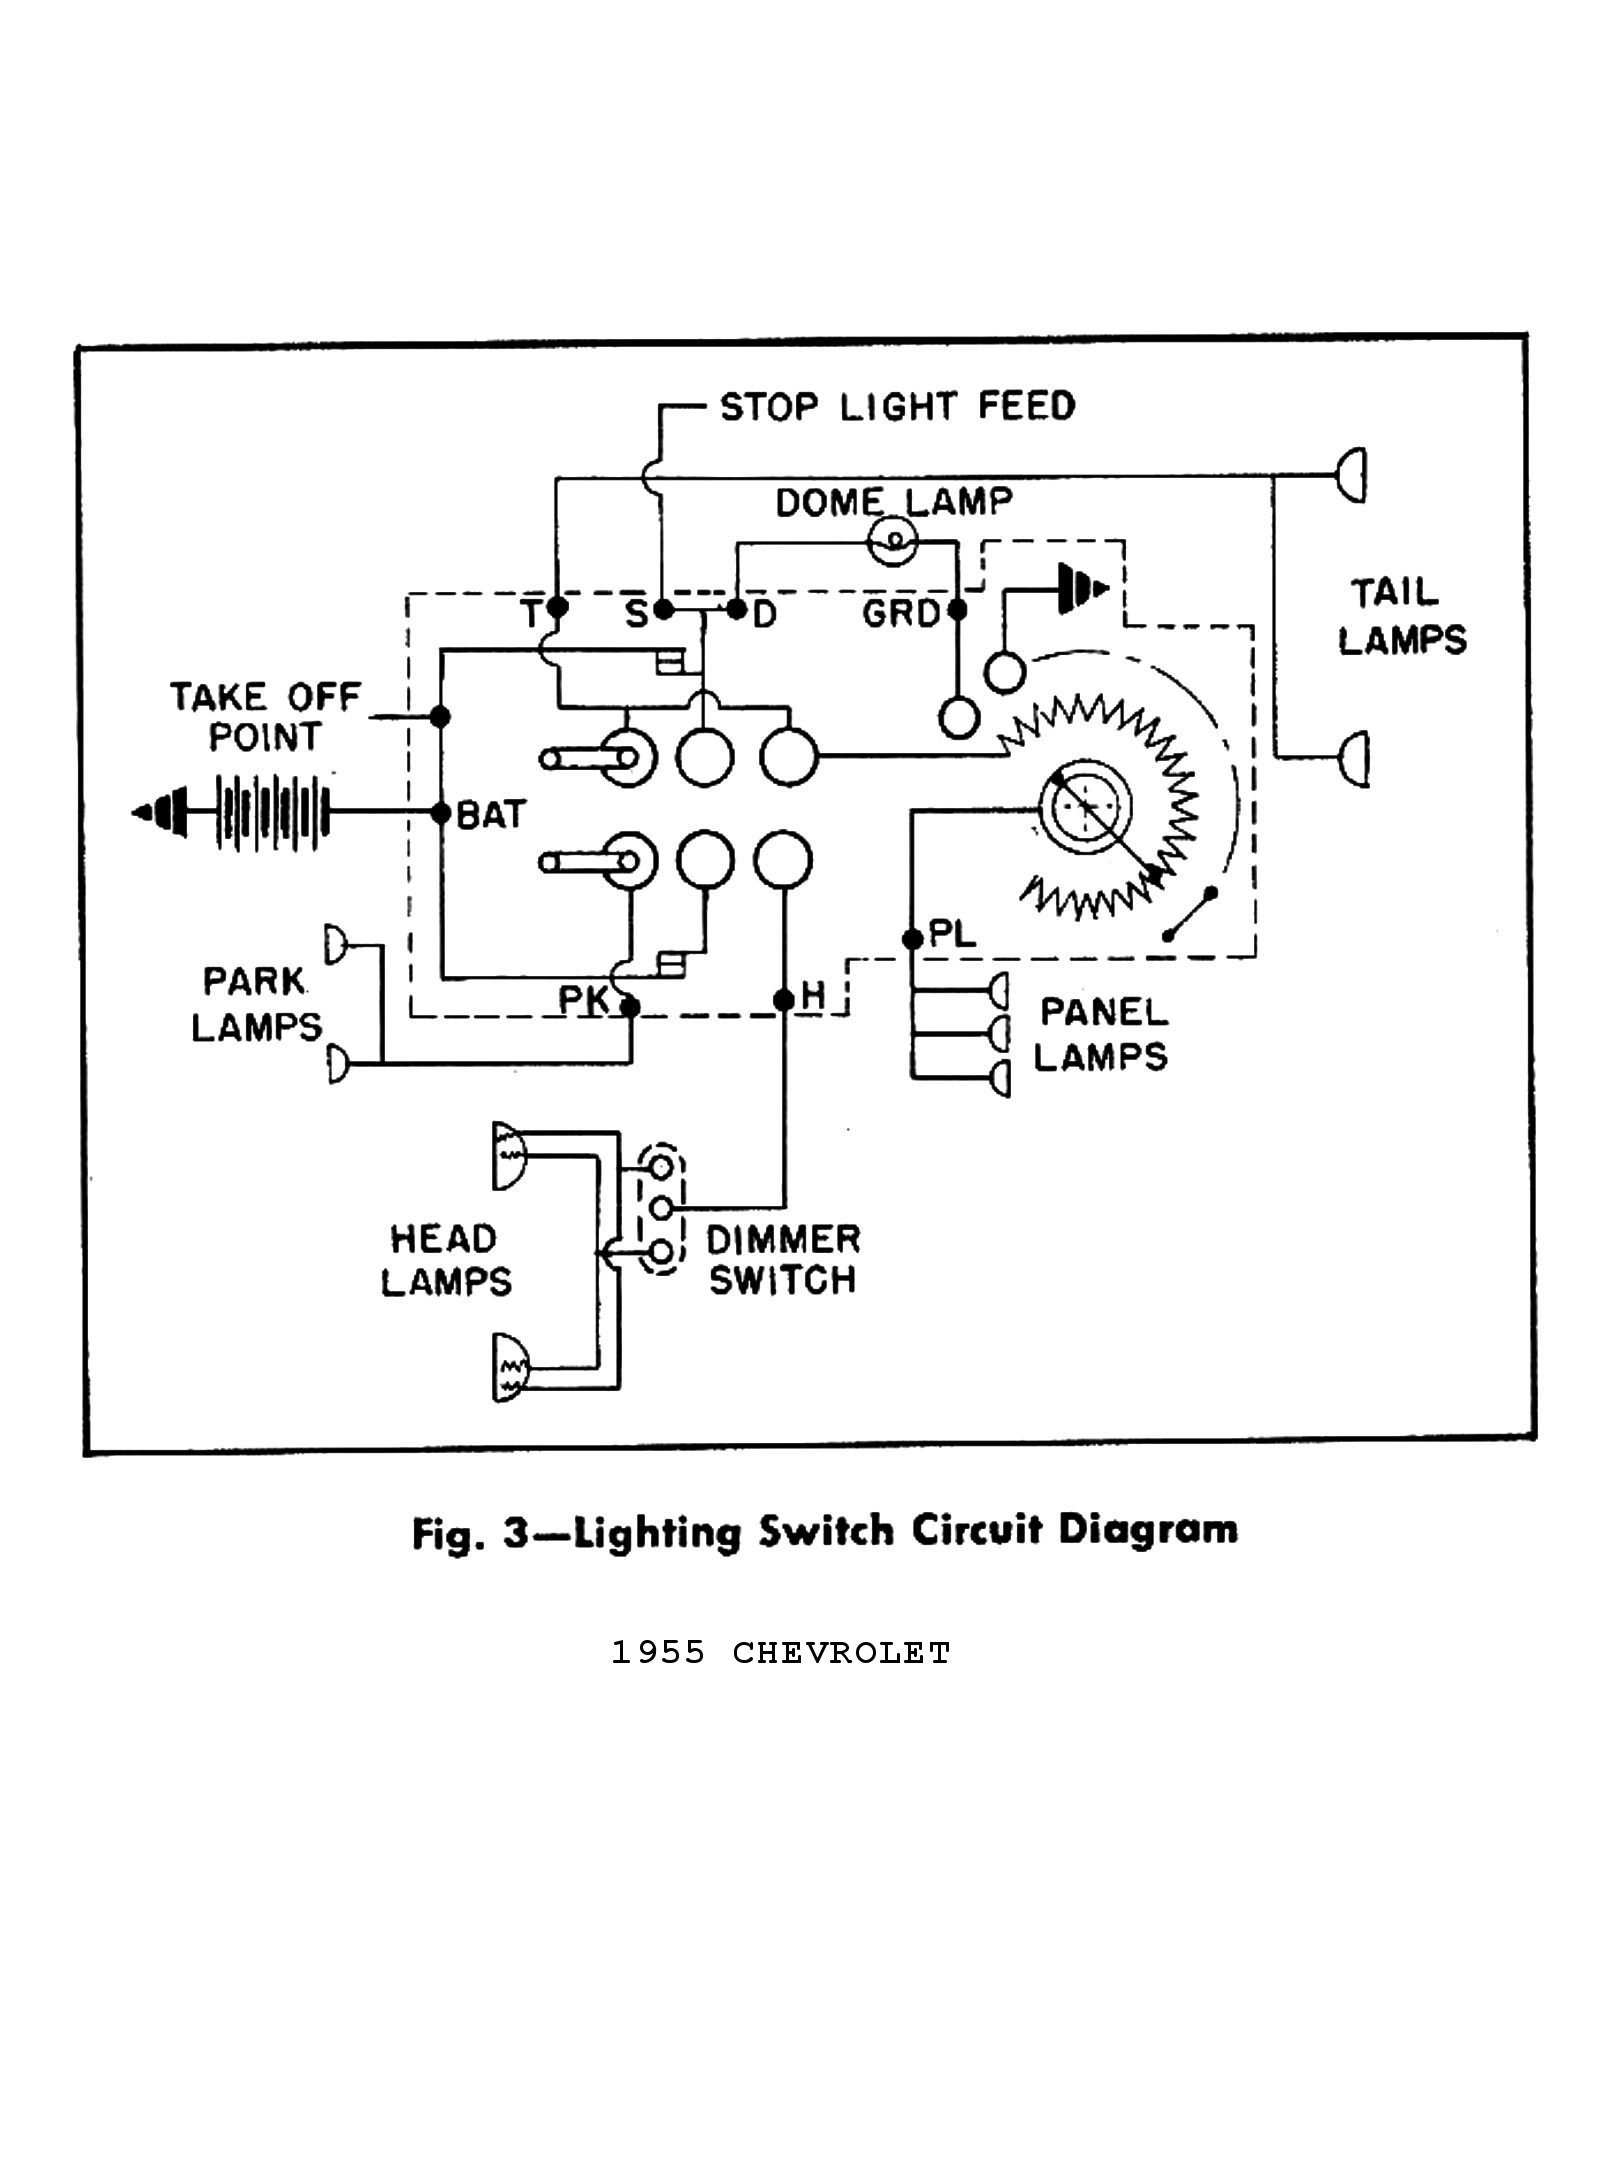 56 Chevy Wiring Diagram from chevy.oldcarmanualproject.com